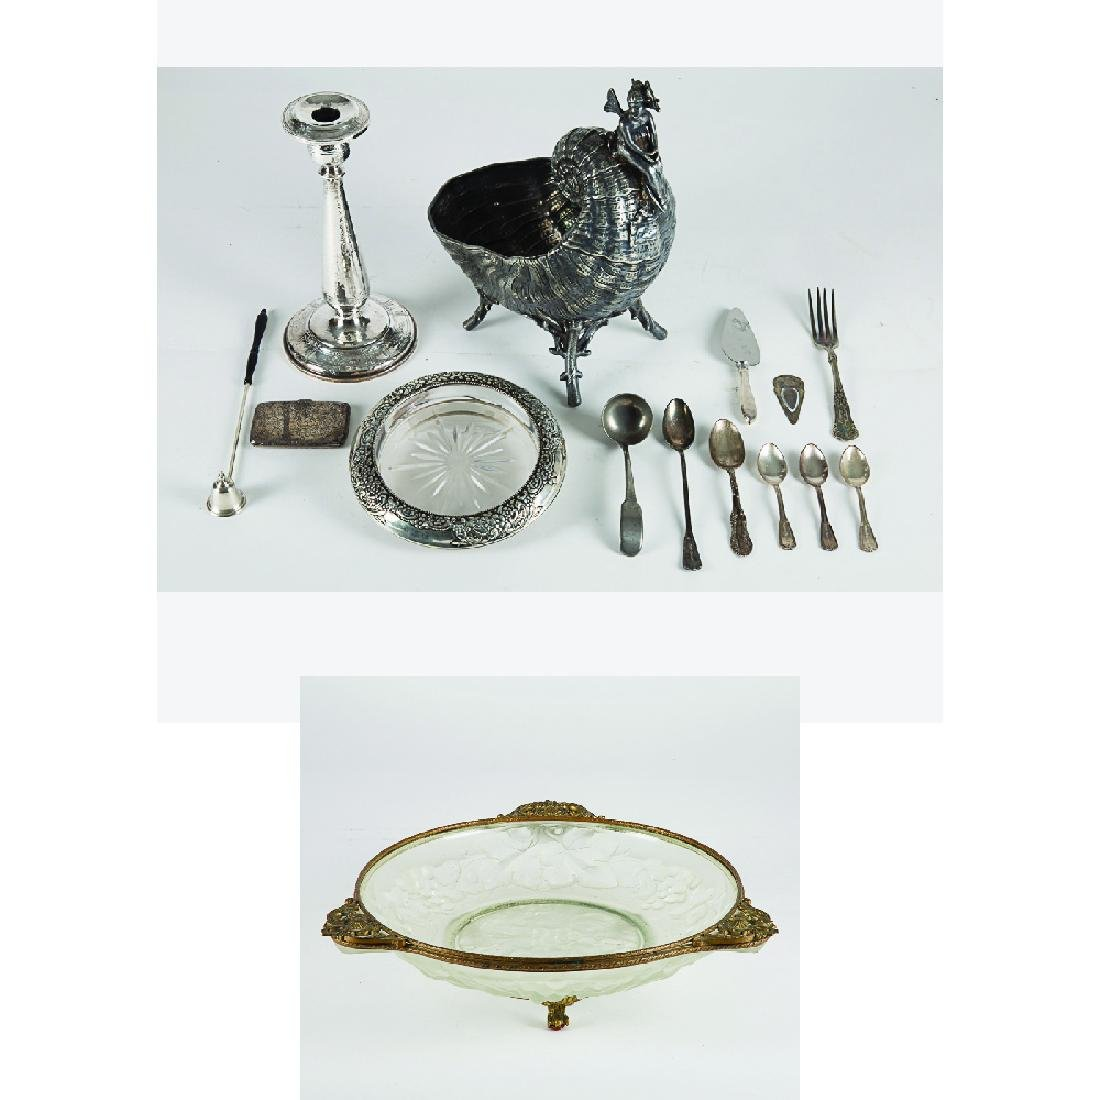 A Miscellaneous Collection of Sterling Silver, Silver